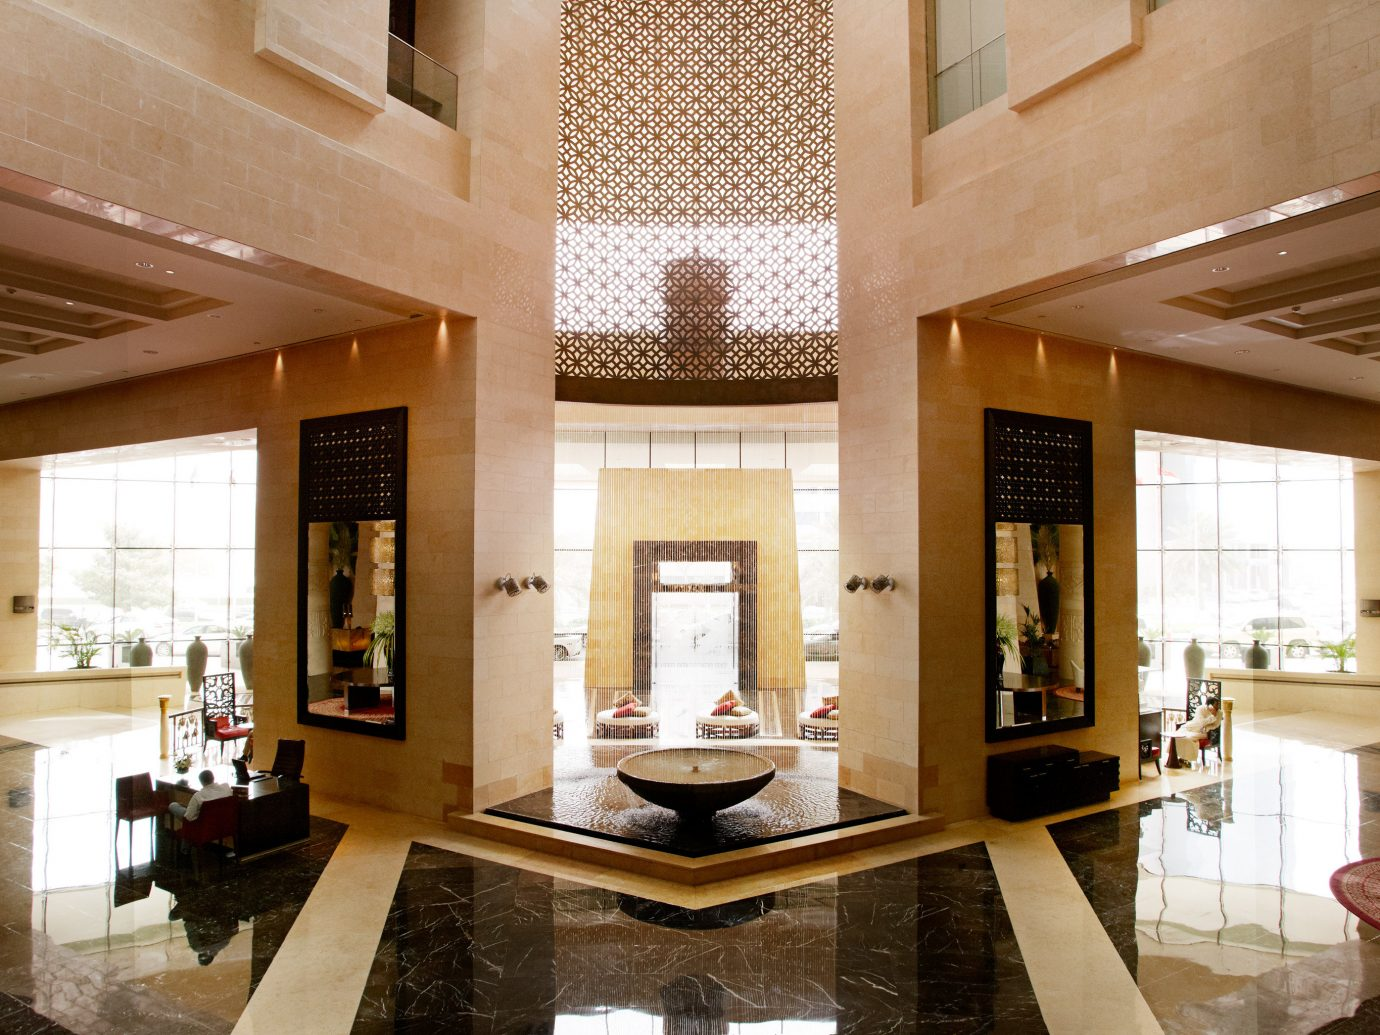 City Dubai Hotels Living Lounge Luxury Luxury Travel Middle East Scenic views indoor floor property room estate Lobby ceiling living room house home Architecture interior design mansion Design tourist attraction area furniture